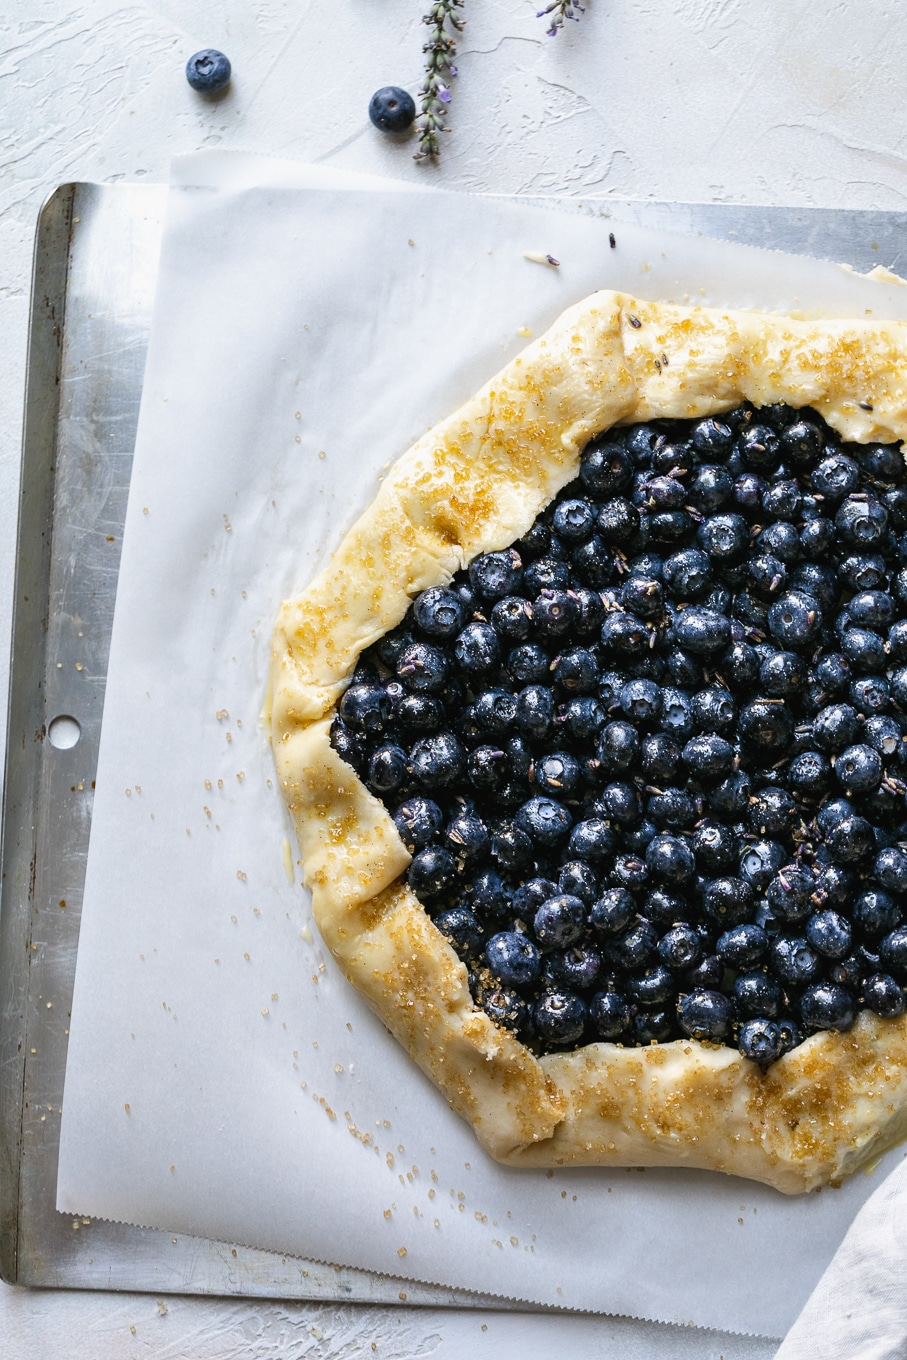 Overhead shot of a blueberry galette before baking